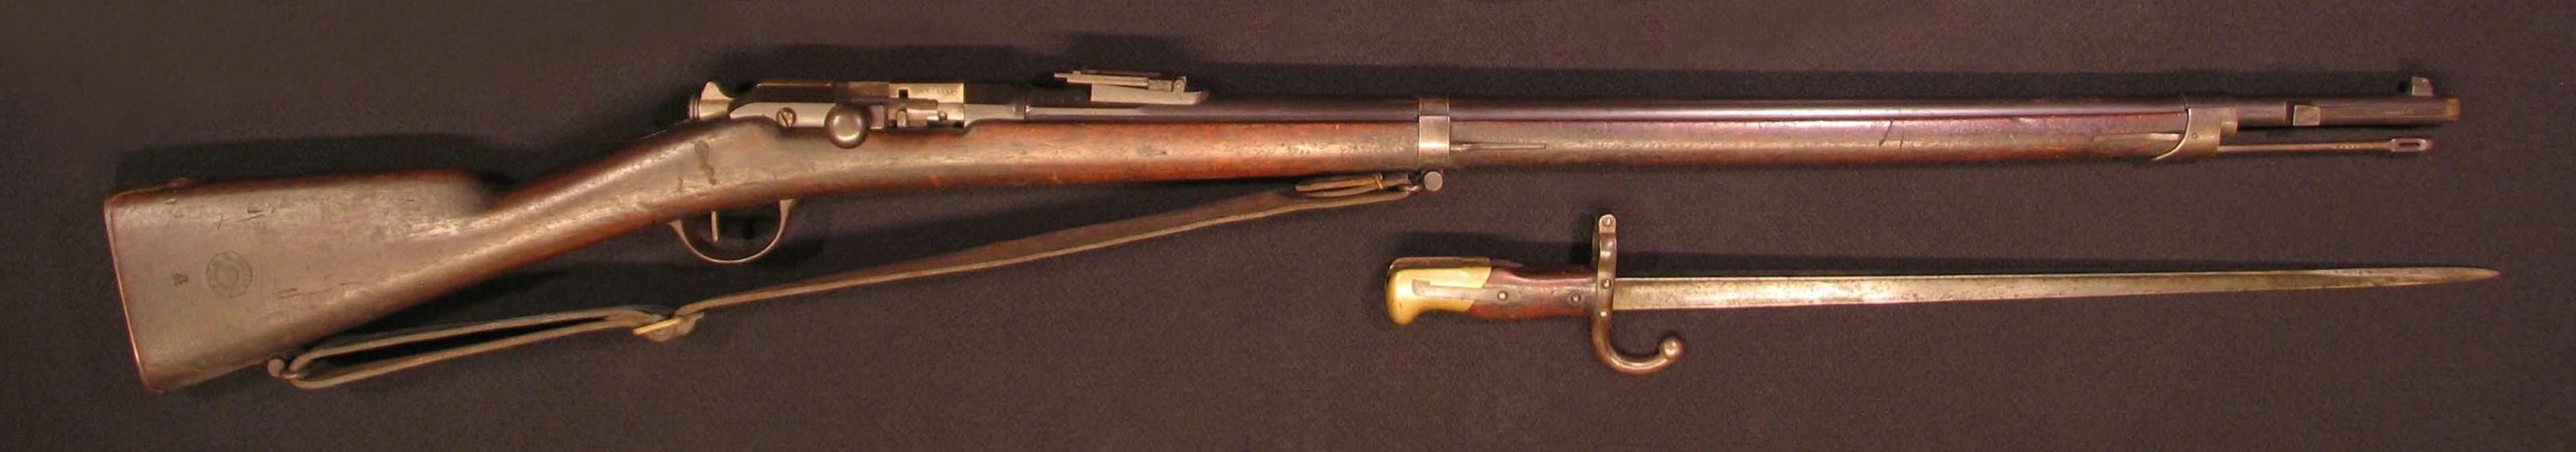 Click image for larger version.  Name:French Mle 1874 Gras Infantry Rifle 01R.JPG Views:25 Size:168.9 KB ID:570706